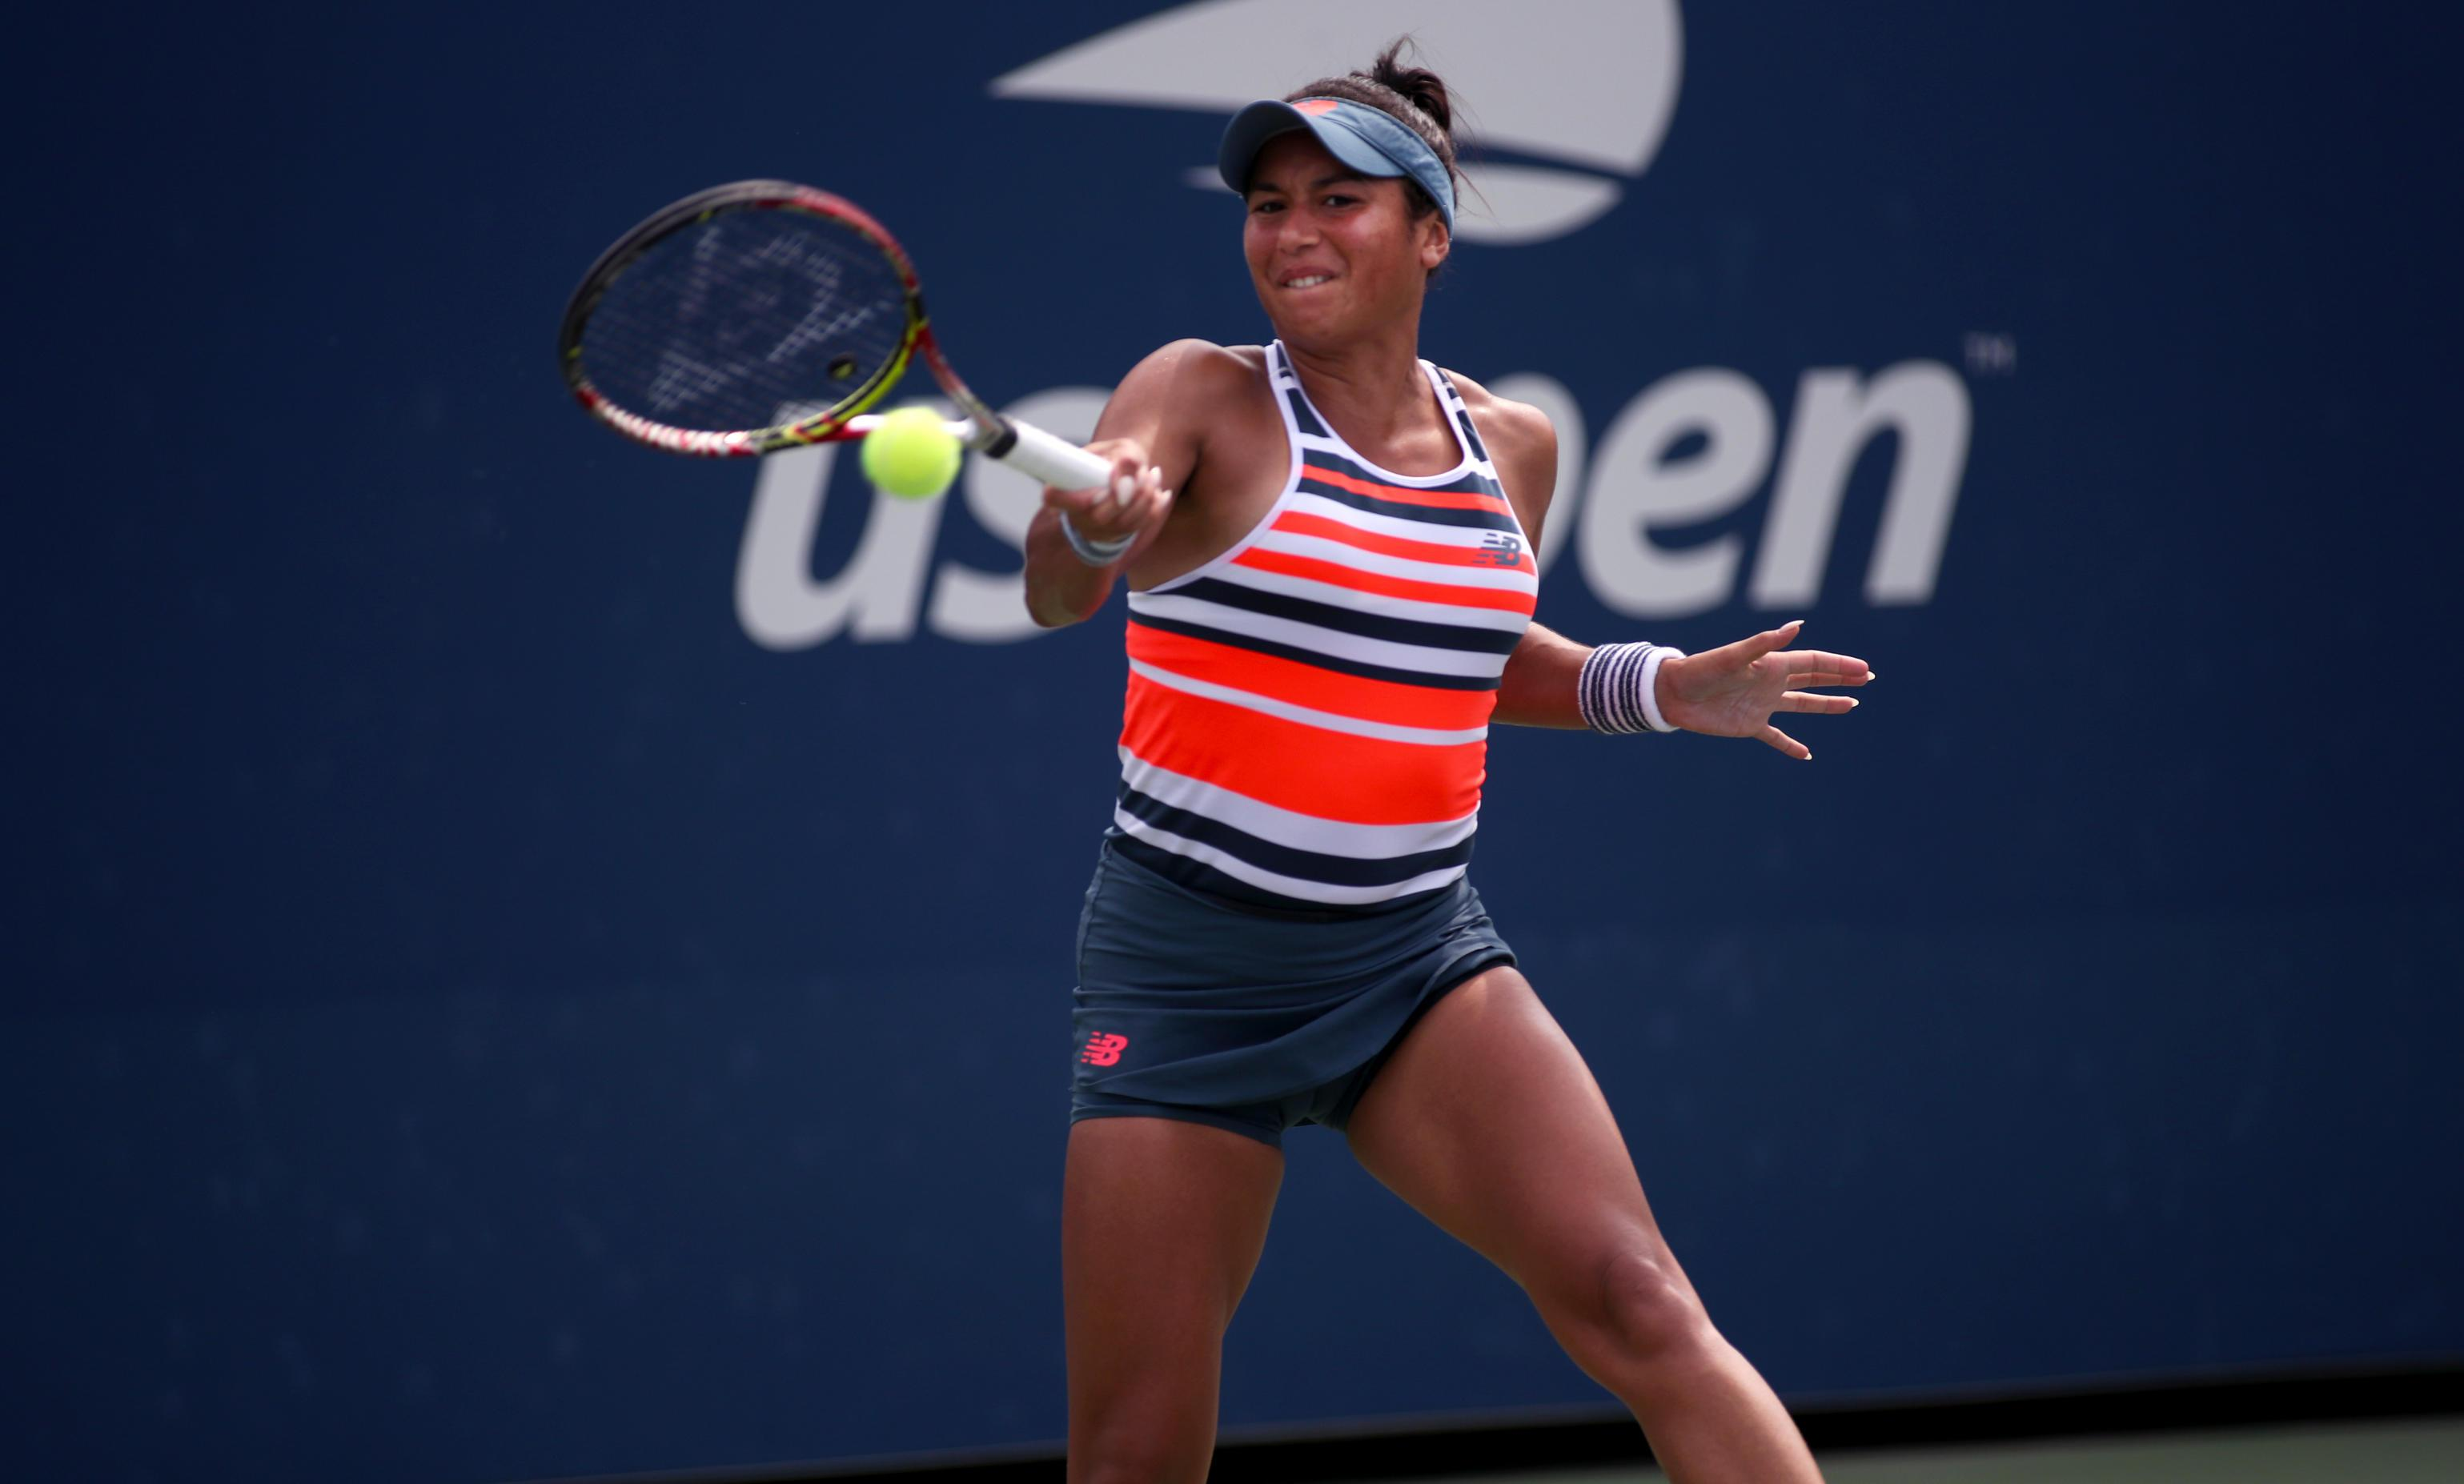 Supporters were unhappy that they could not watch Heather Watson's match with Ekaterina Makarova